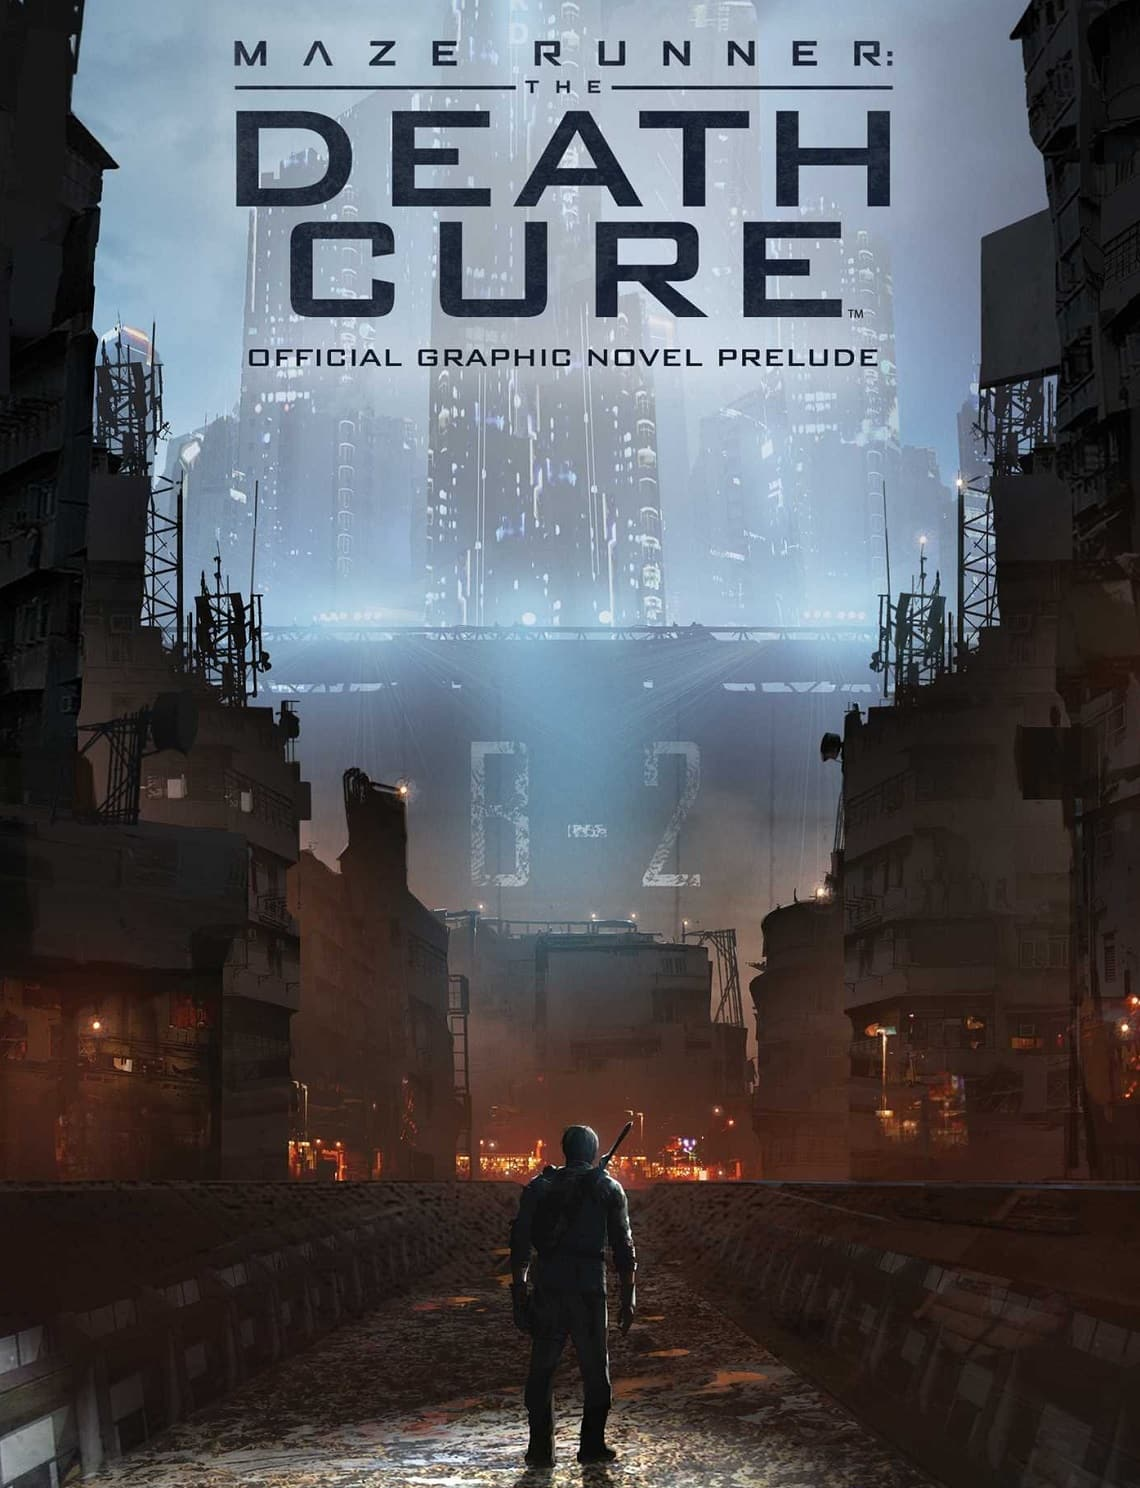 The Death Cure Audiobook Free Download and Listen